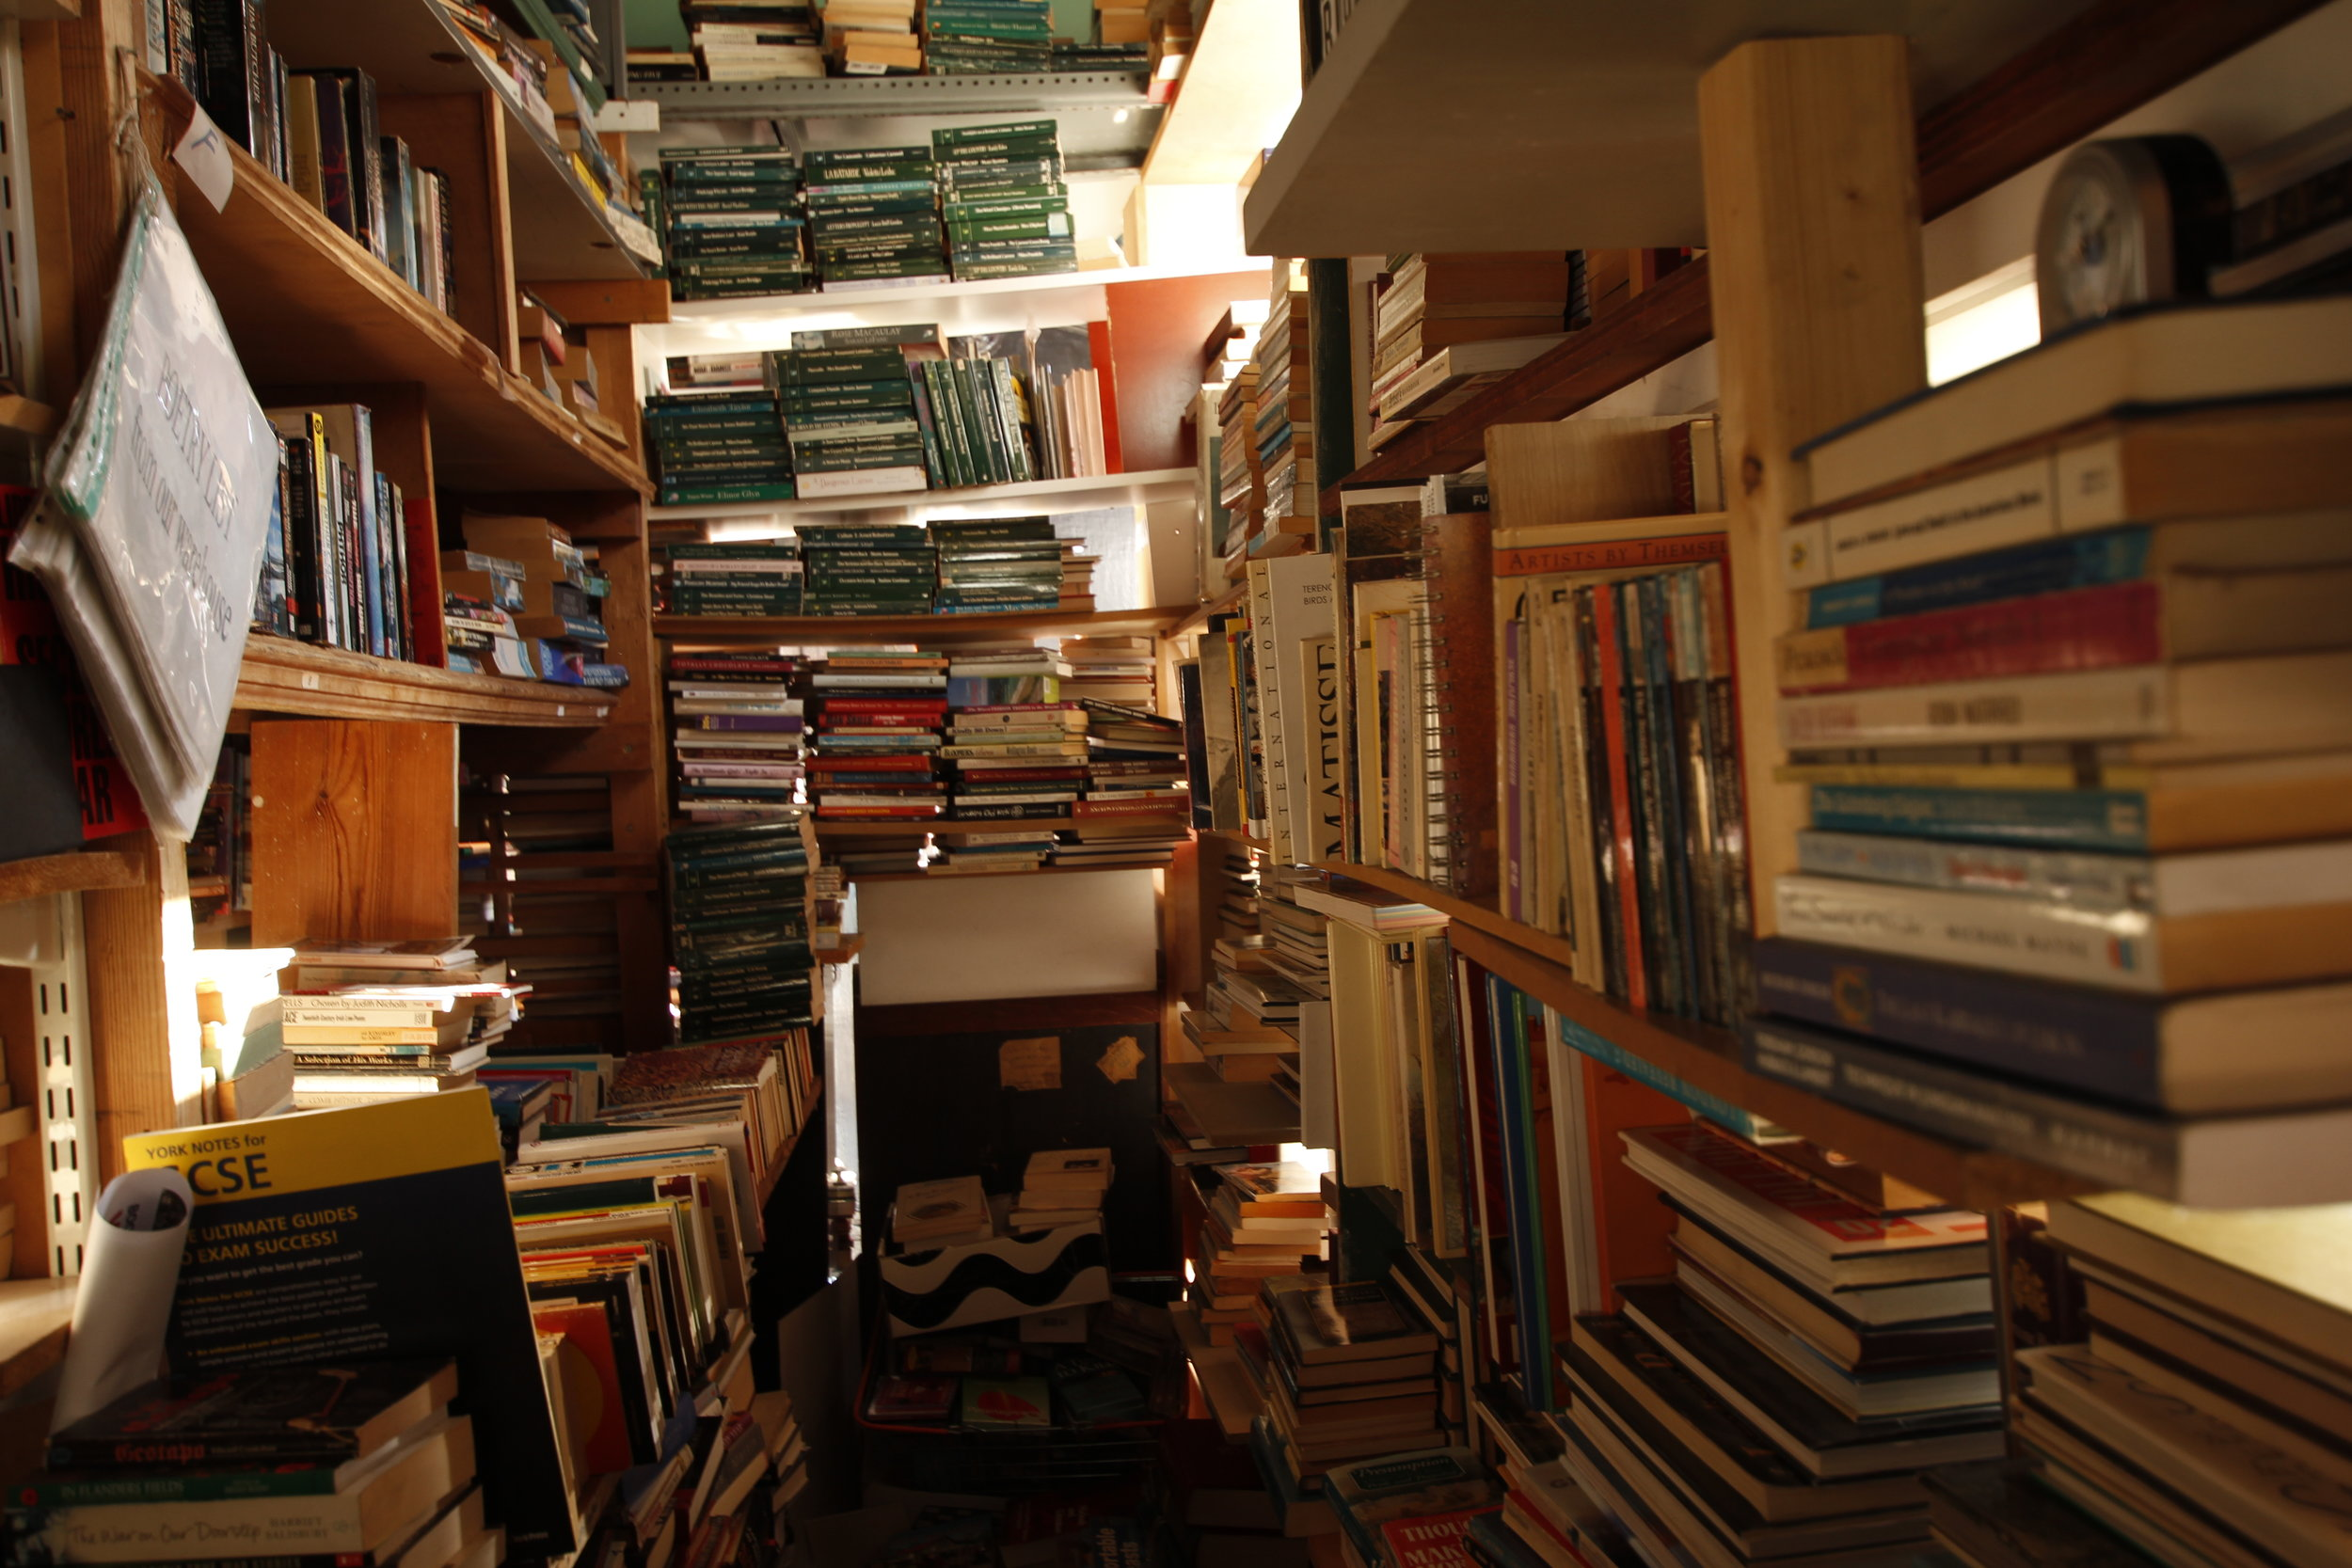 Hurlingham books won The Fringe Report Award (2011) for Best Bookshop